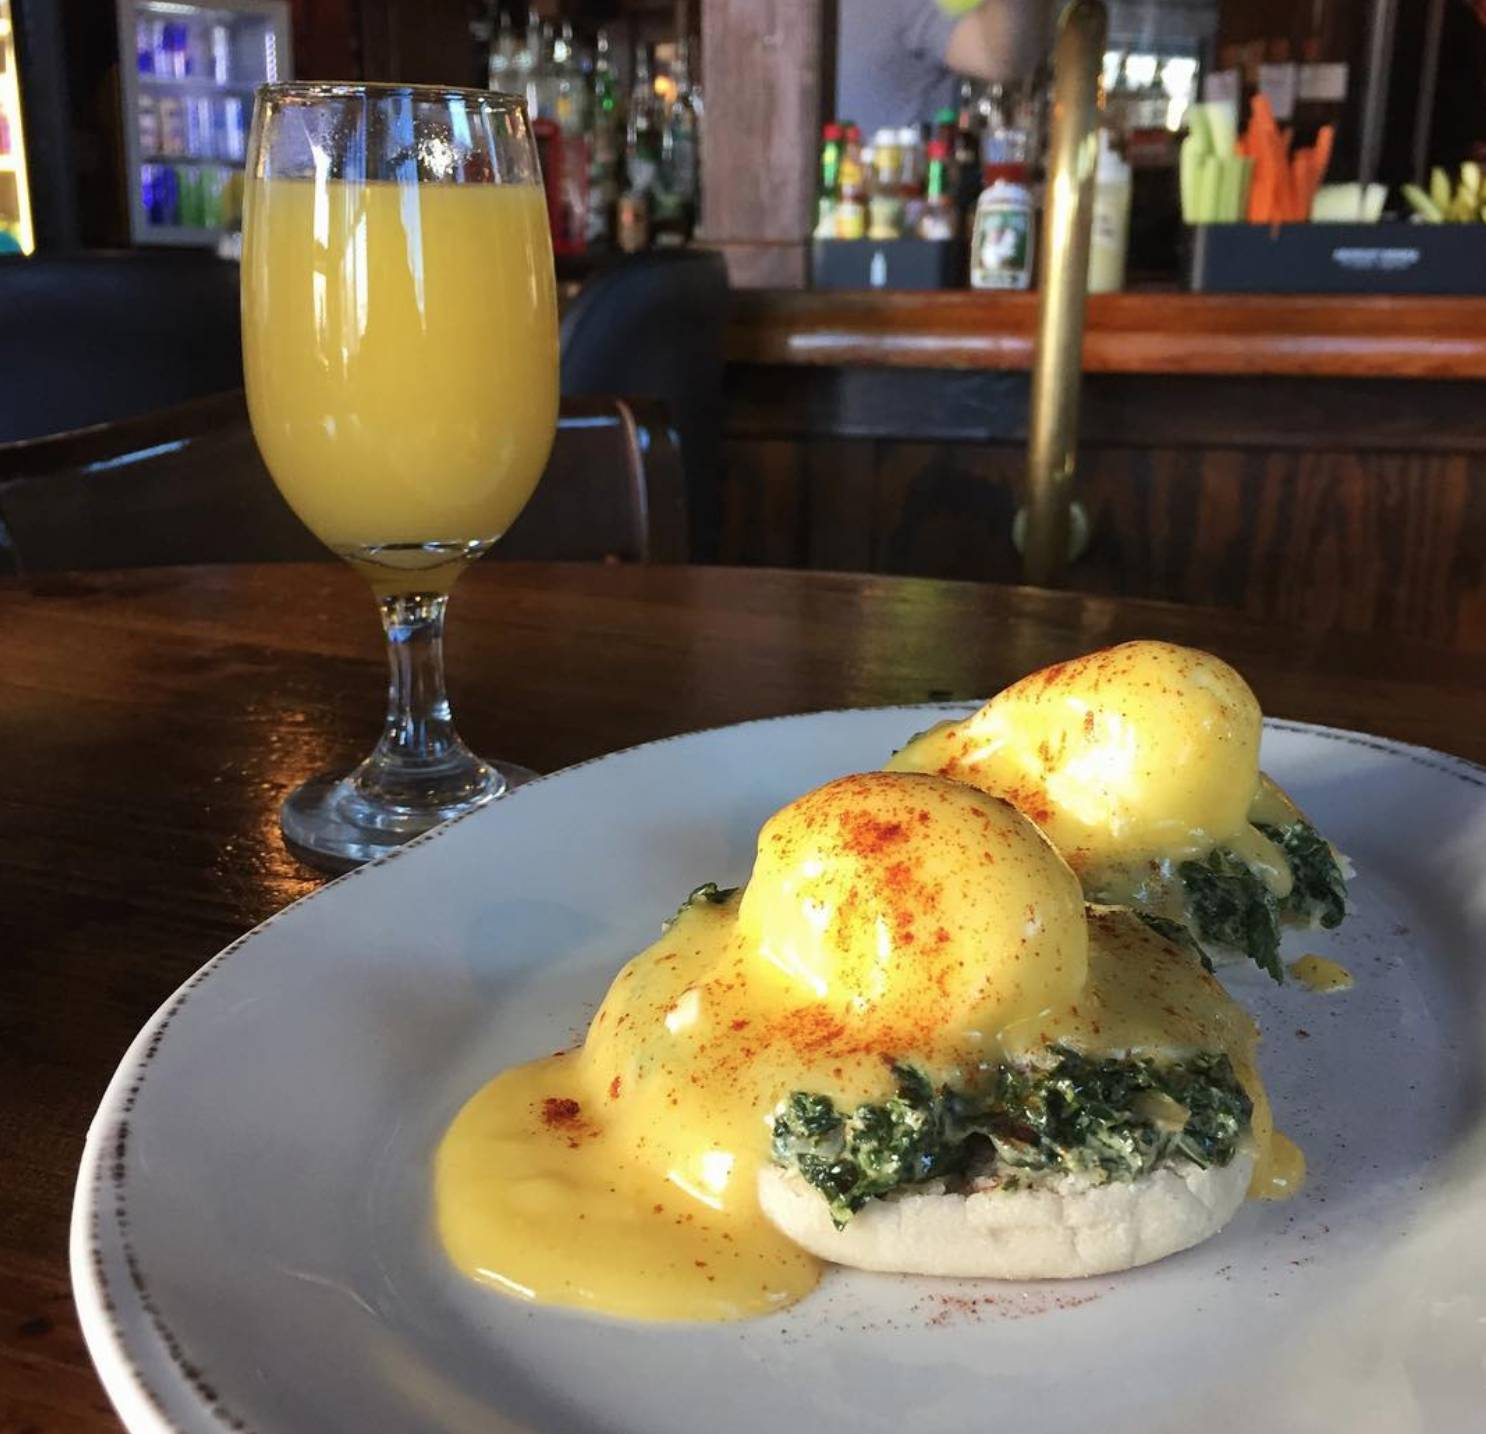 Sunday Brunch w/ $2 Mimosas